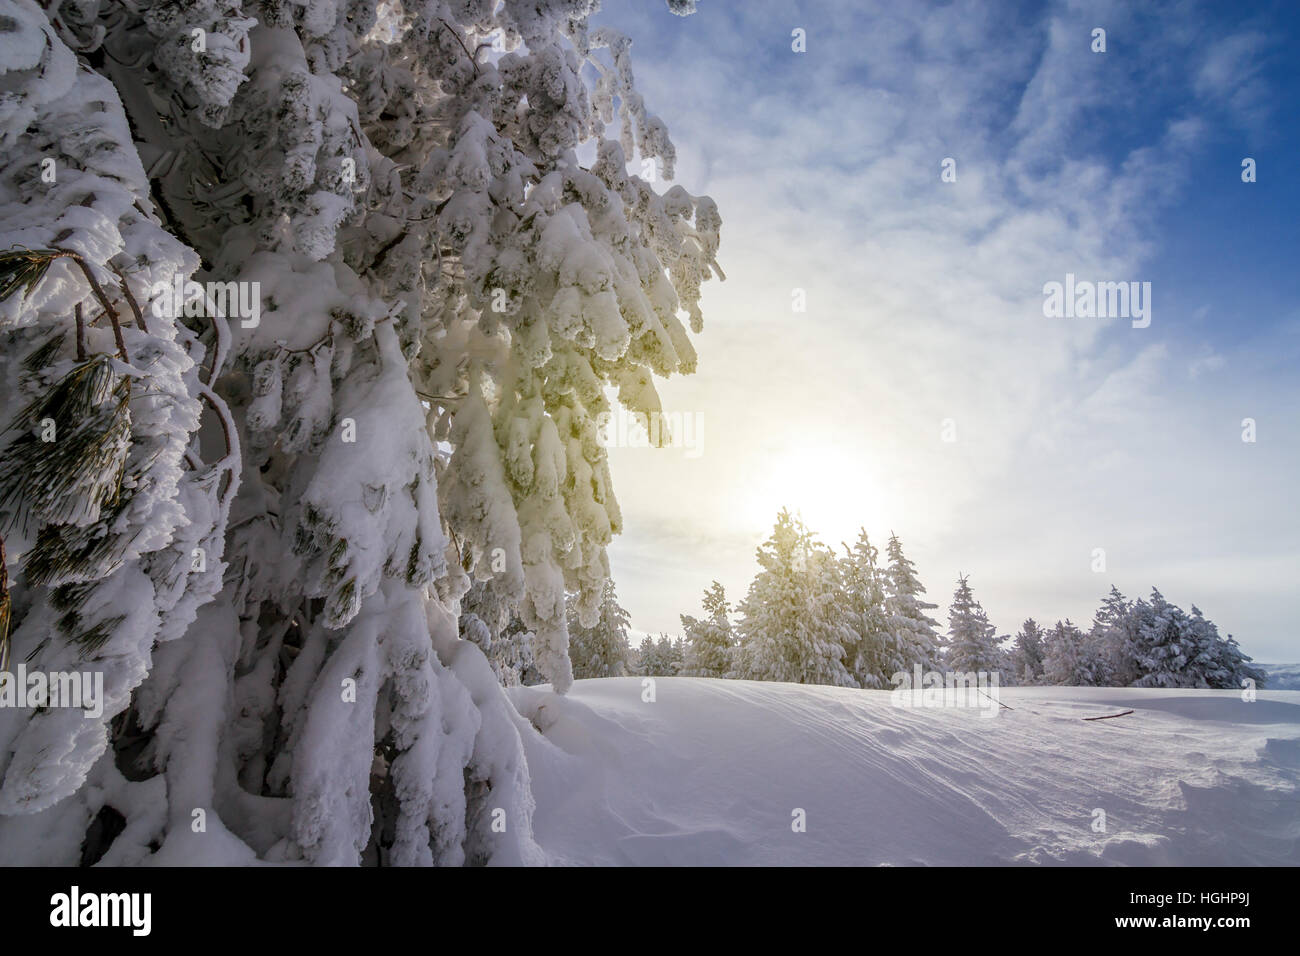 Spruce branch in winter at sunset - Stock Image